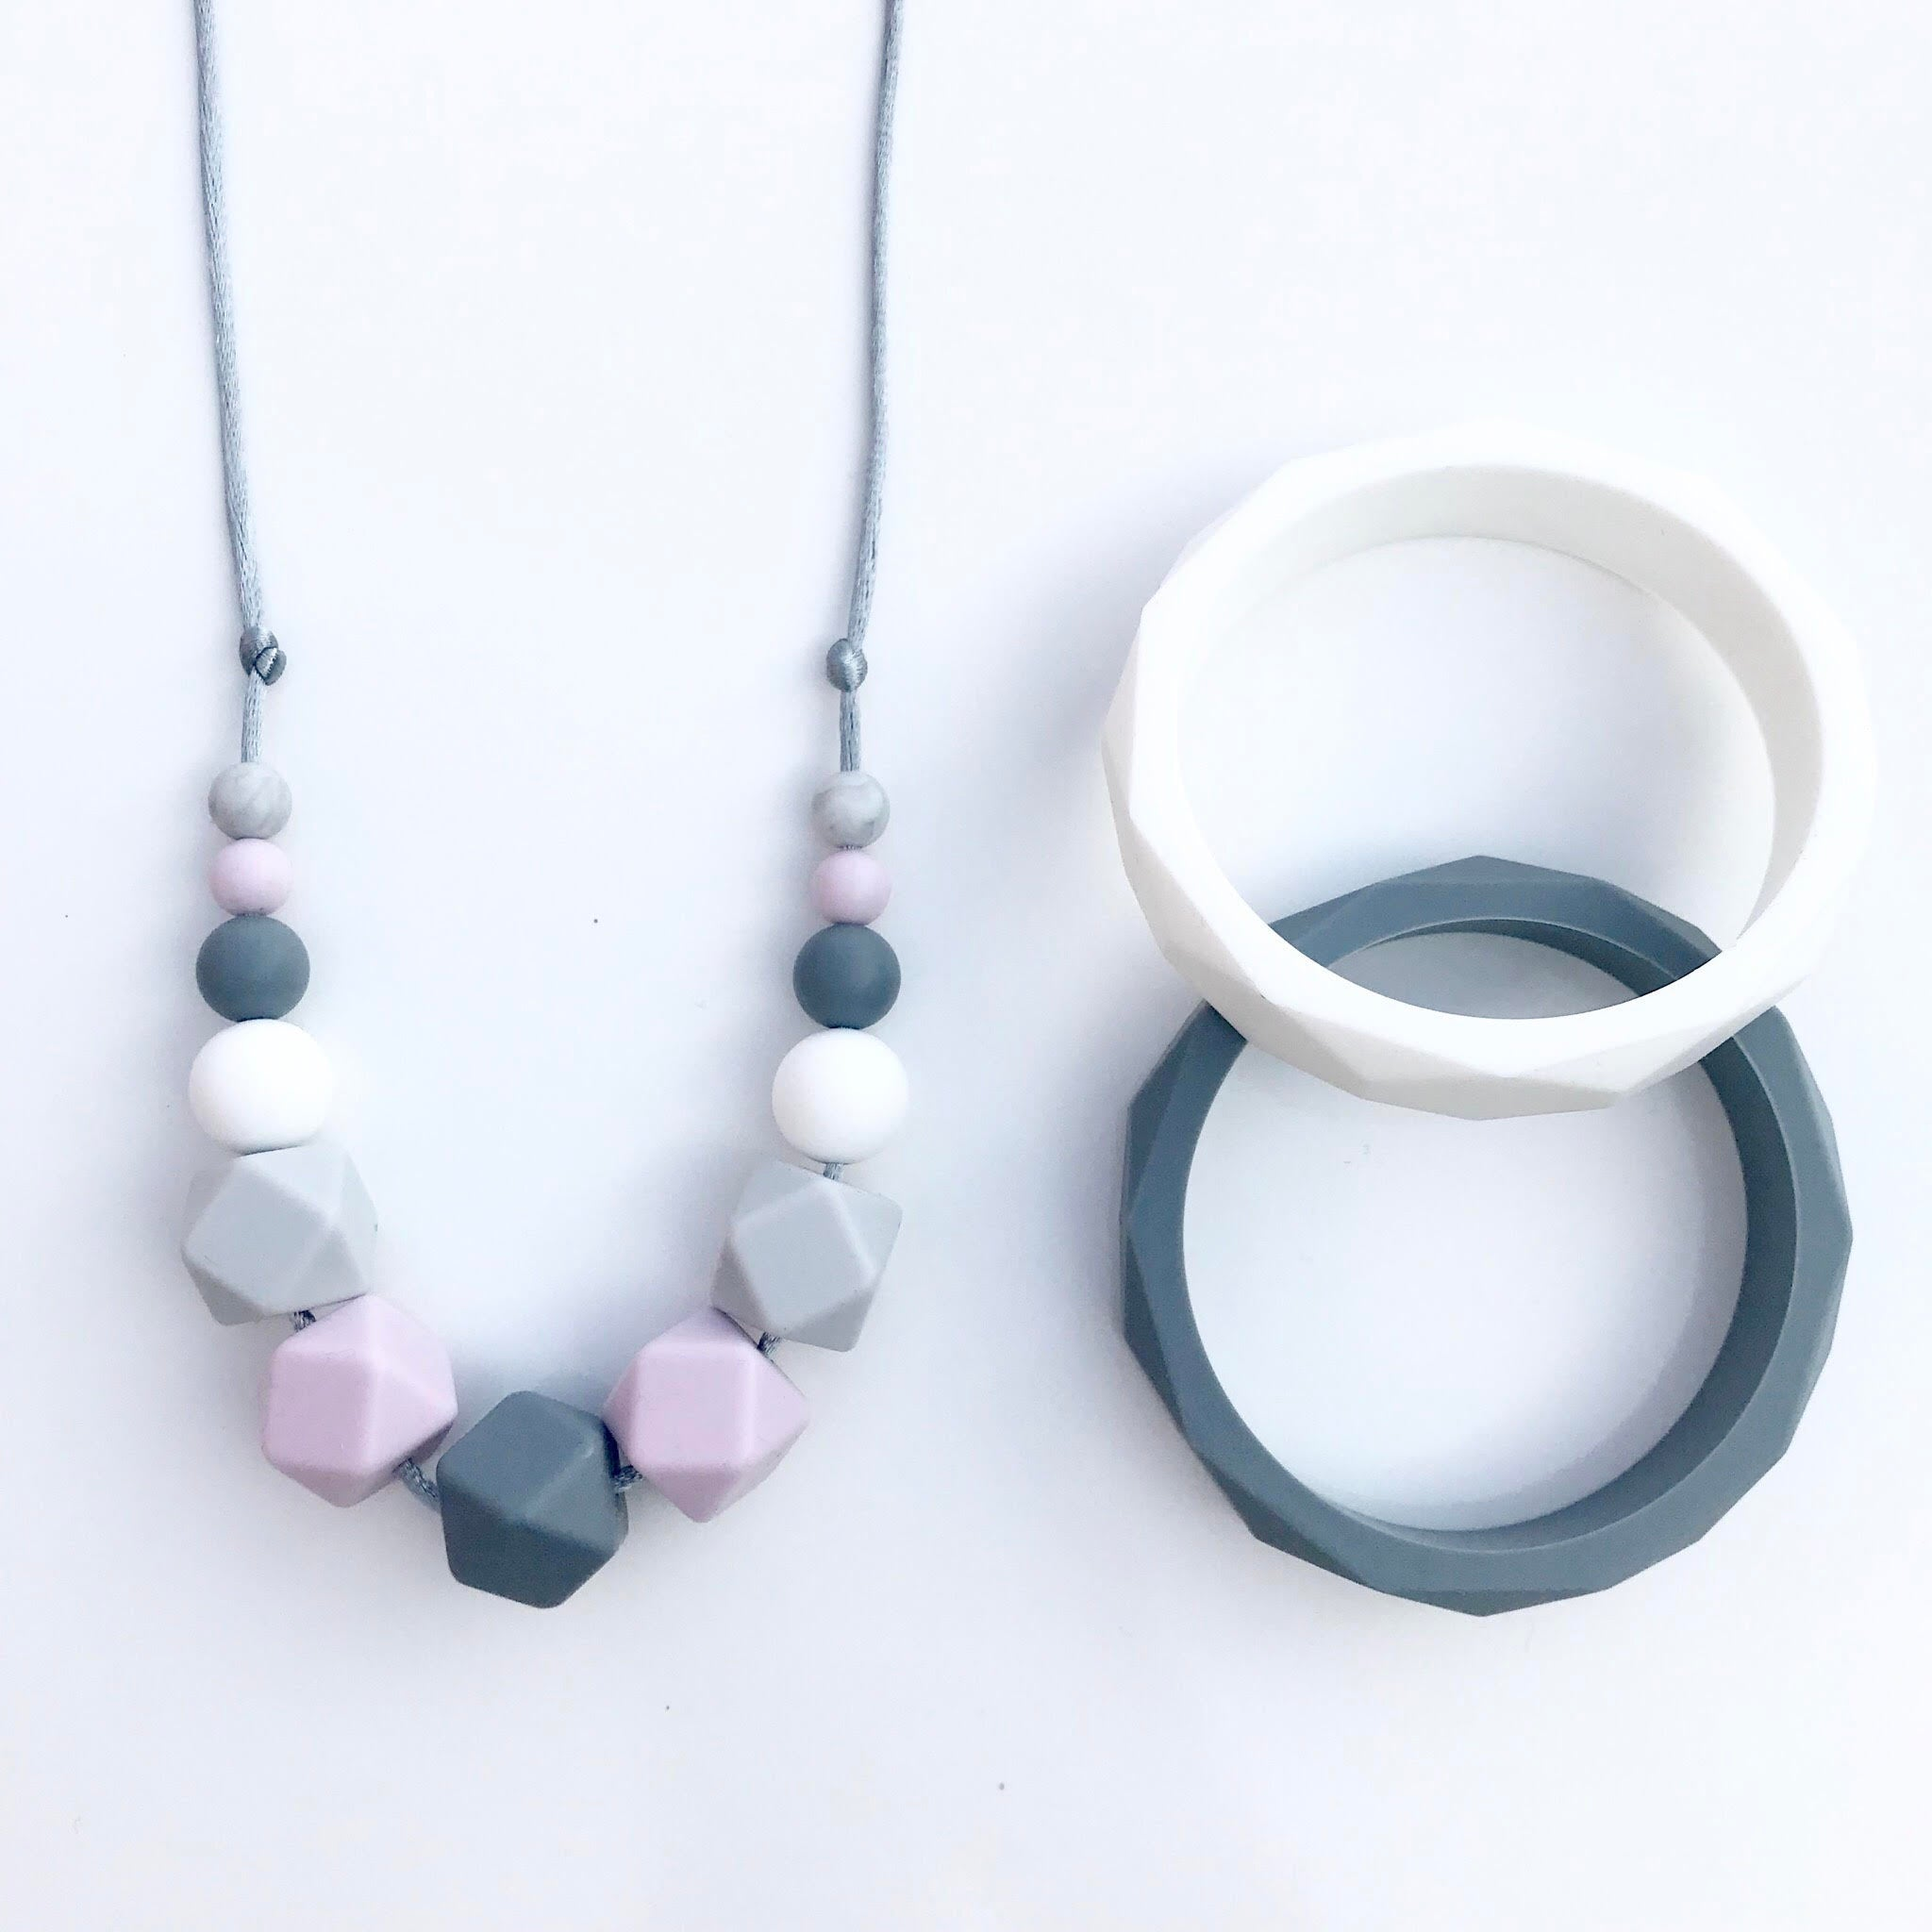 Iris teething necklace by Mama Knows available at Wonder of Kin with free shipping.